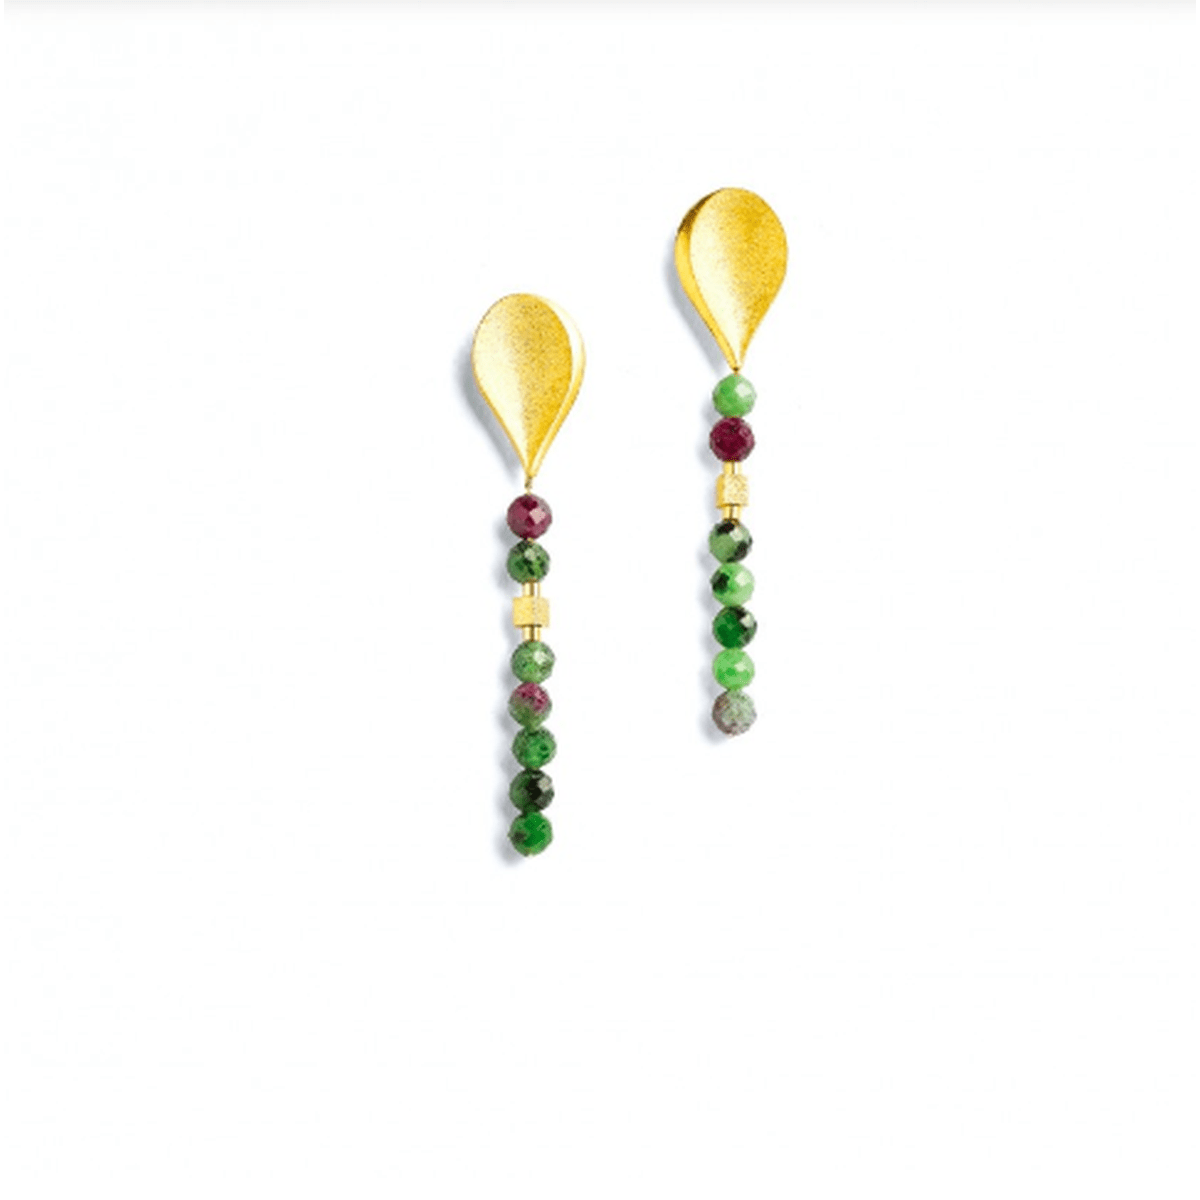 Aquelli Ruby Zoisite Earrings - 15534086-Bernd Wolf-Renee Taylor Gallery